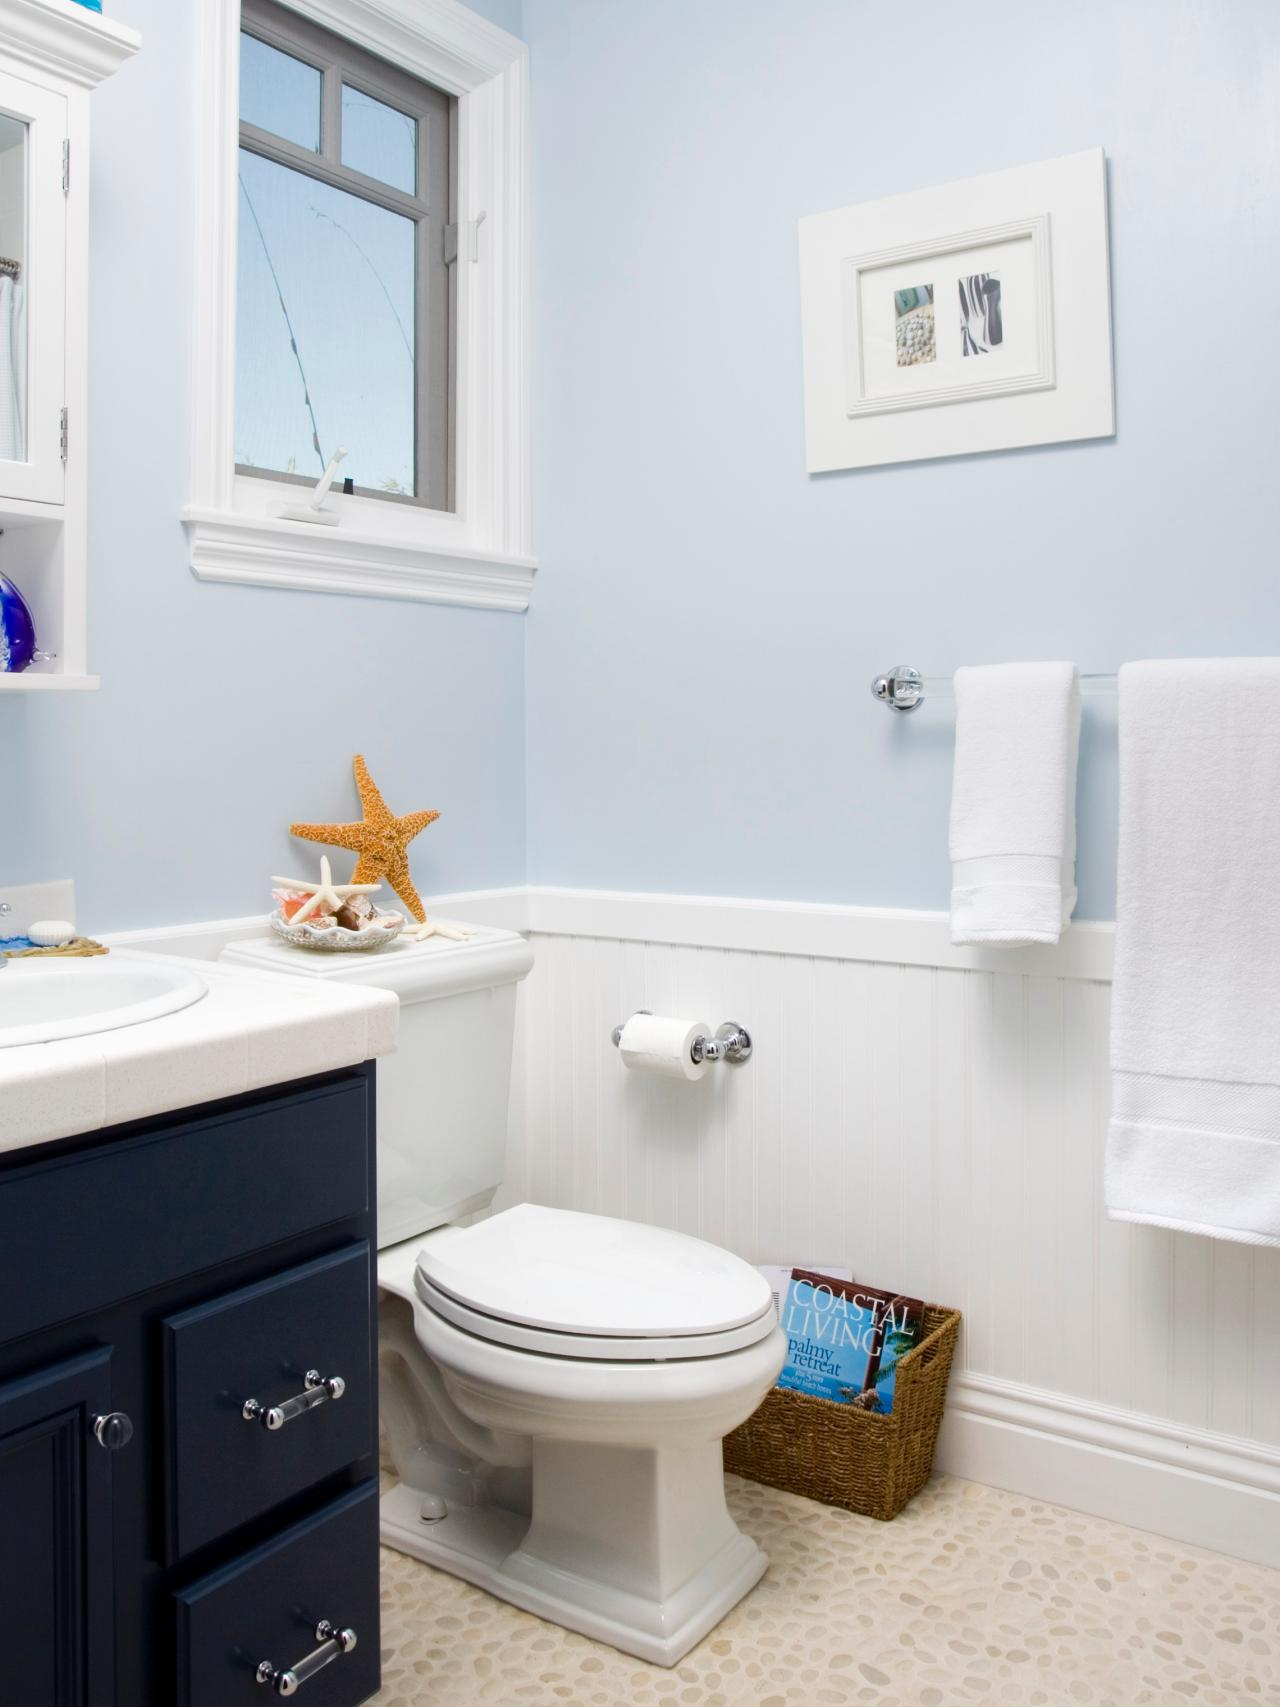 Victorian Bathroom Design Ideas Pictures Tips From HGTV HGTV - Light blue bathroom decor for small bathroom ideas